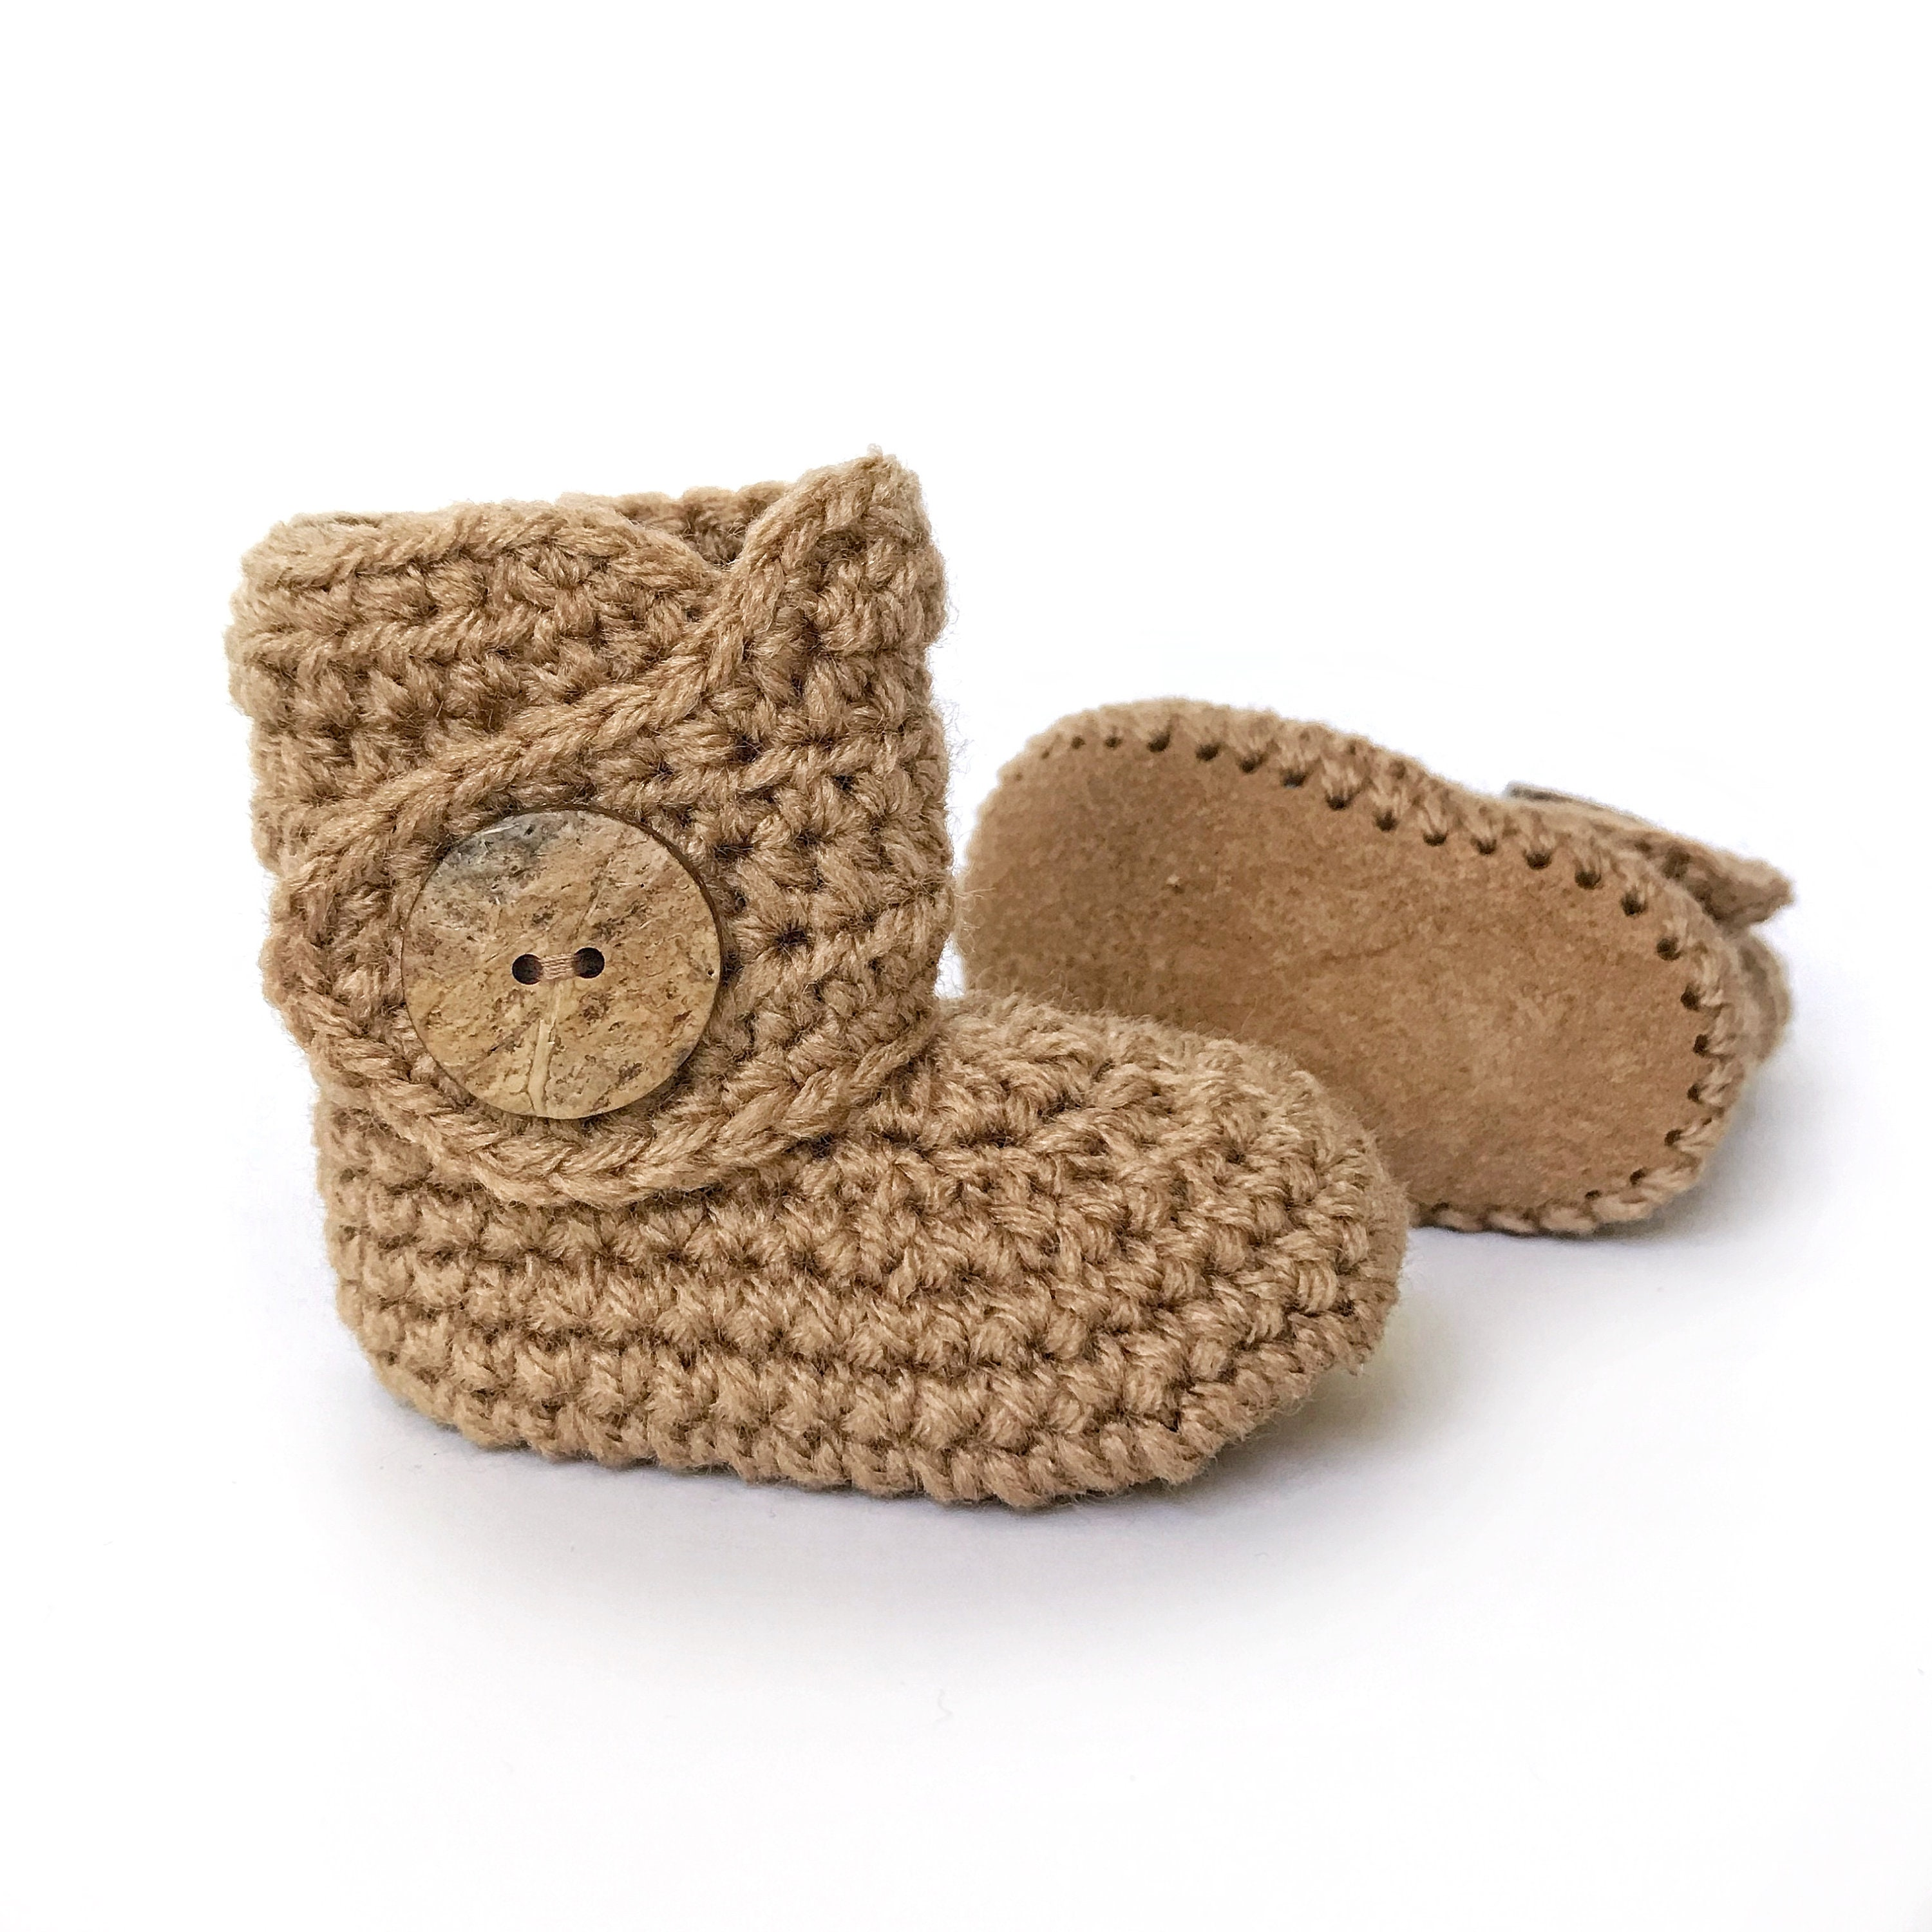 c83058fba813e Infant Crib Shoes, Tan Baby Shoes, Suede Baby Boots, Brown Boy Shoes, Fall  Crochet Baby Booties, Knitted Baby Outfit, Unisex Baby Clothes